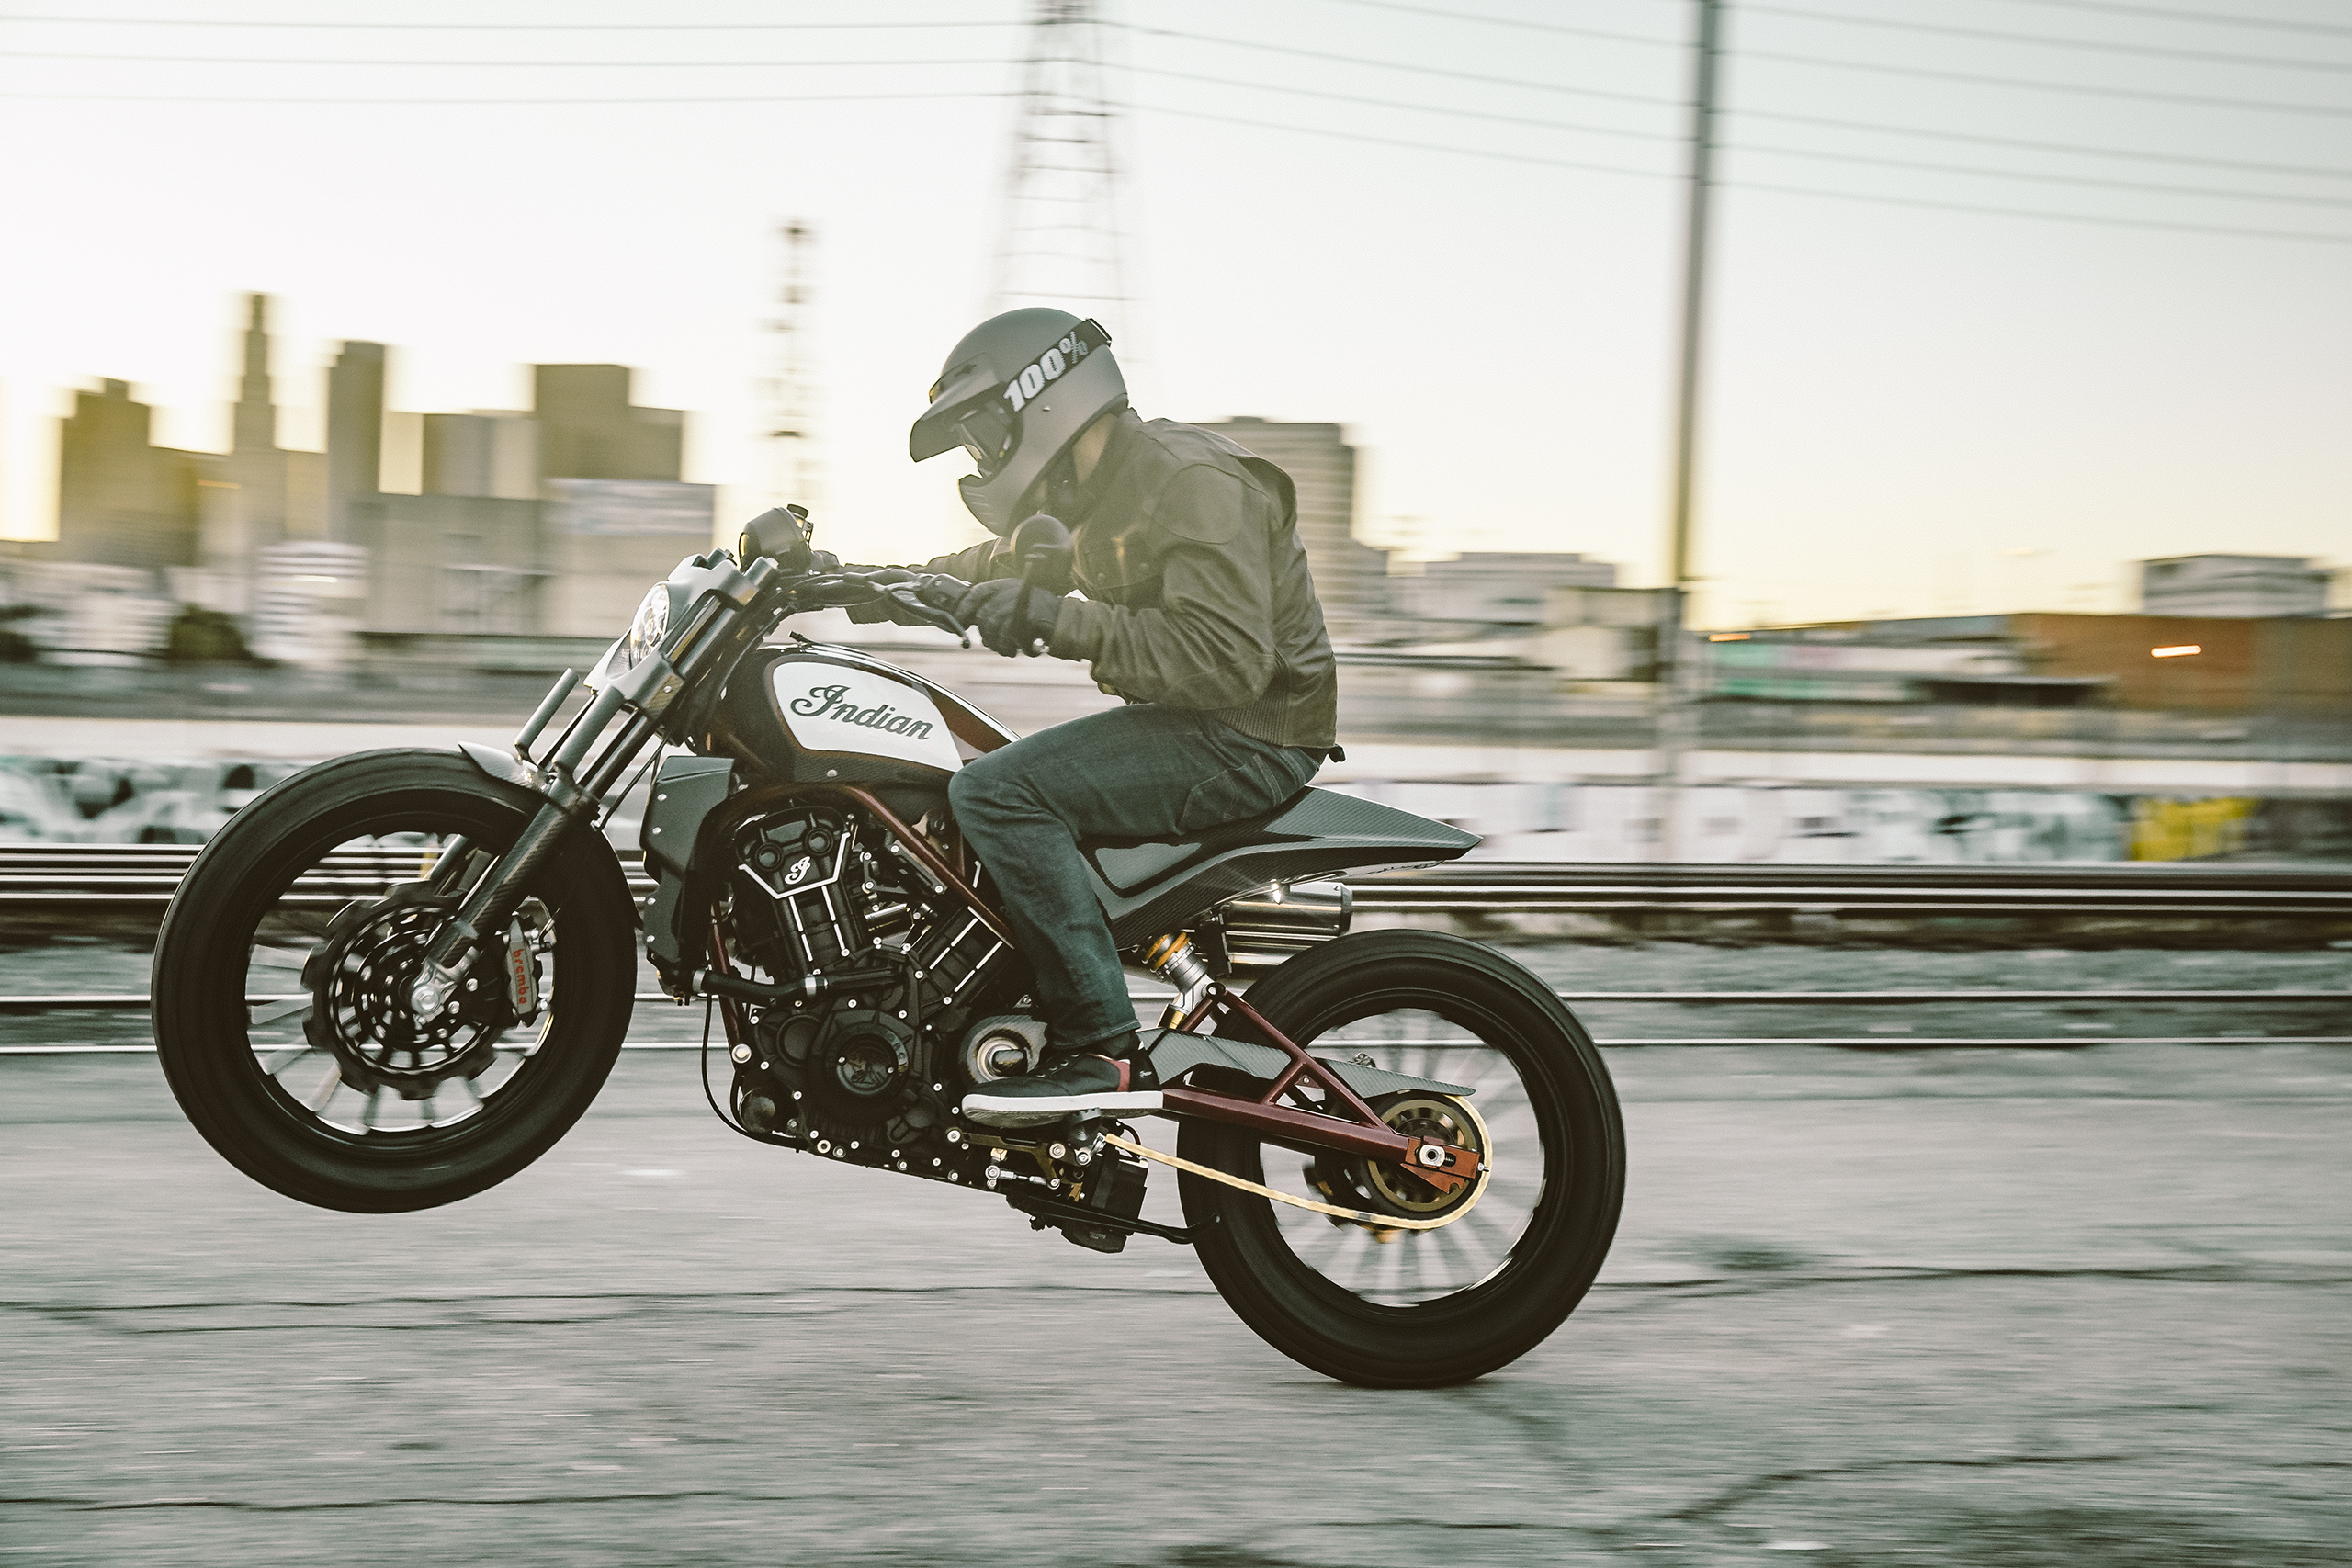 The Indian Scout FTR1200 Custom Is Street Legal Flat Track Bike Of Our Dreams